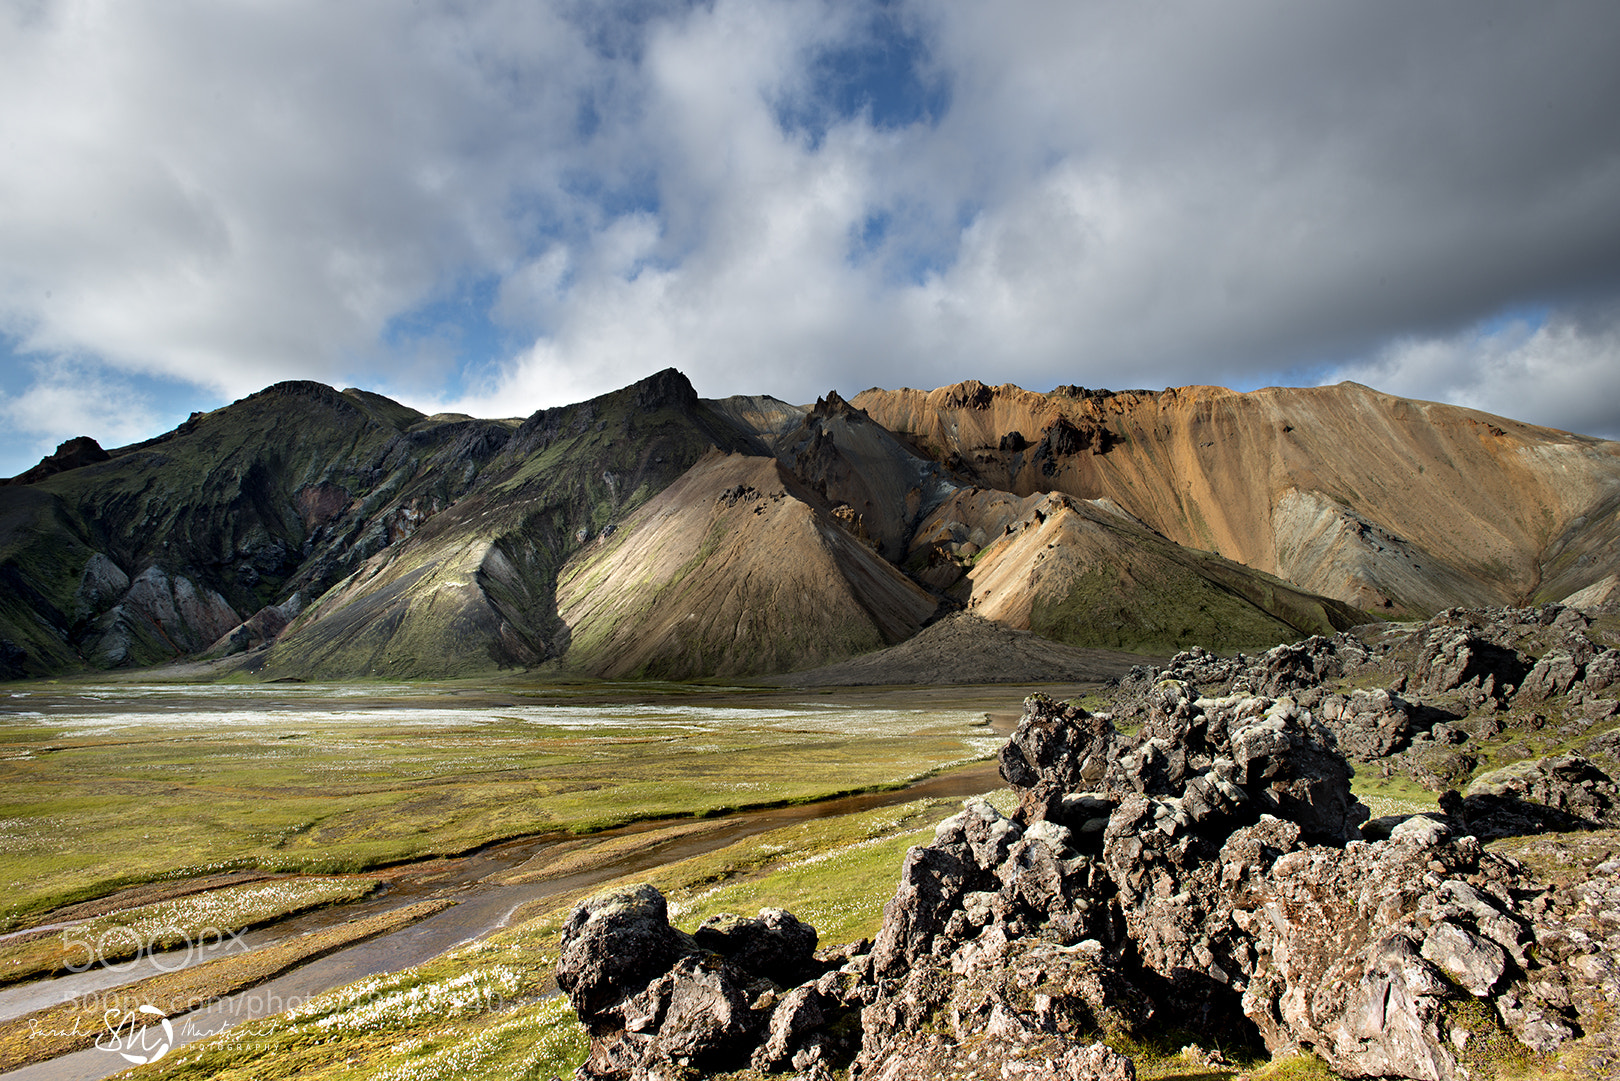 Photograph Volcanic landscape by Sarah Martinet on 500px